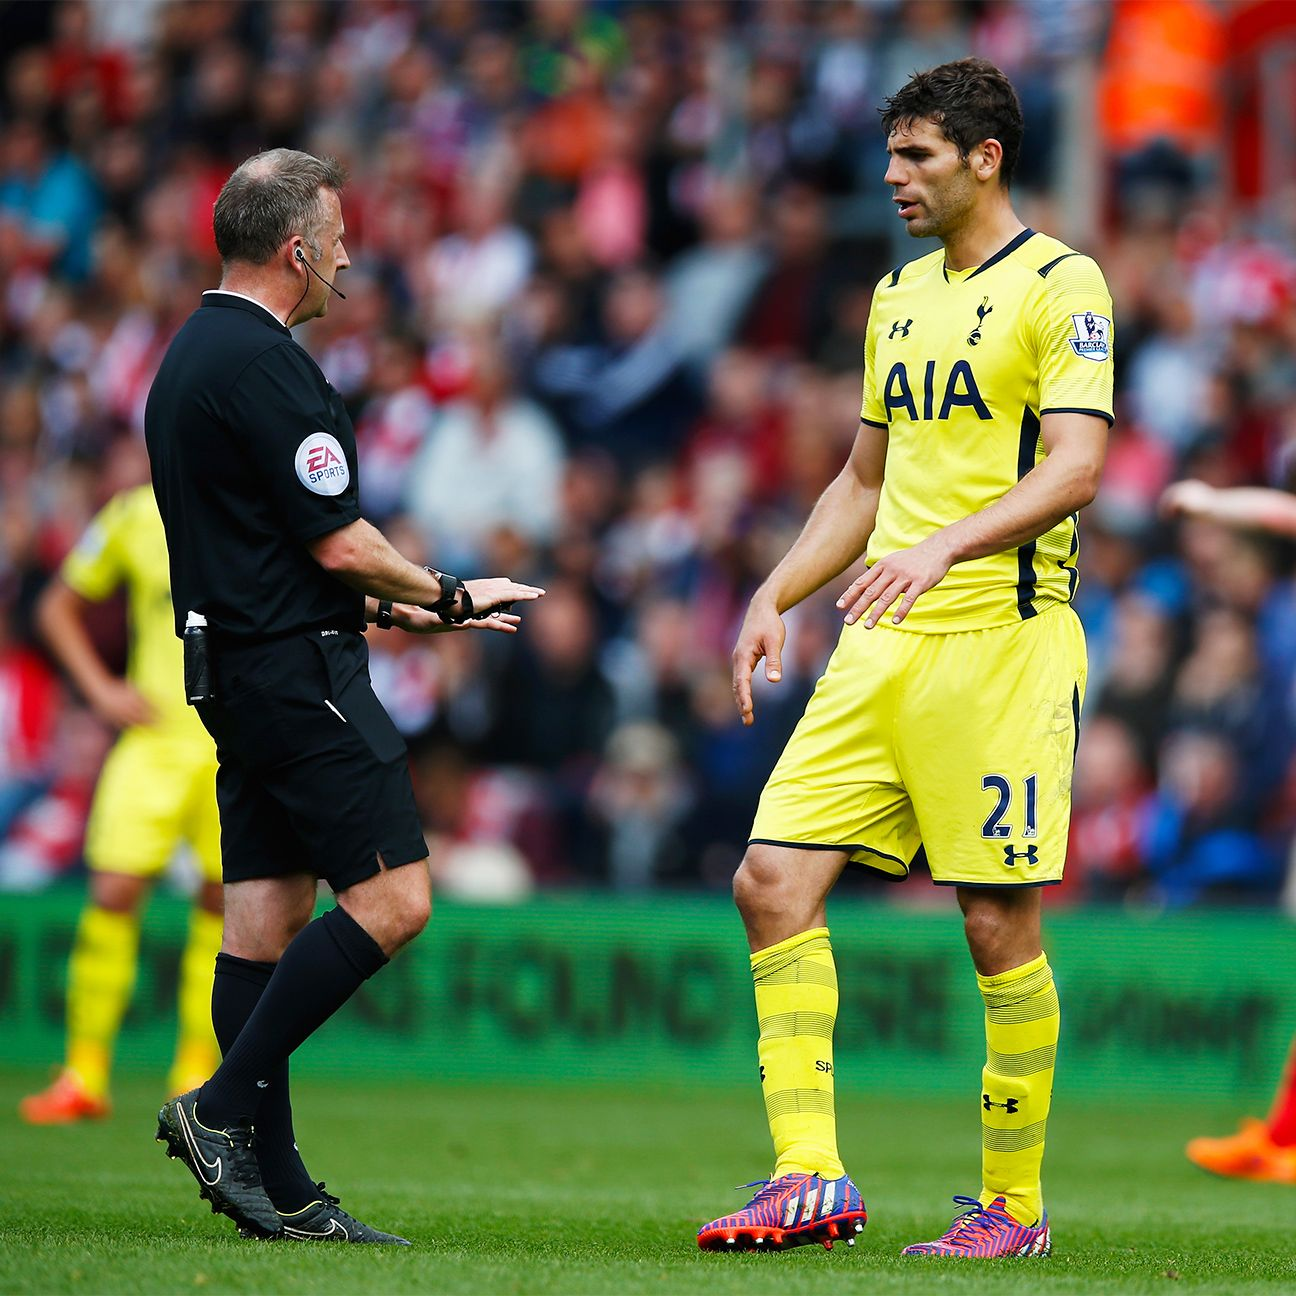 It was a frustrating afternoon all around for Spurs defender Federico Fazio.